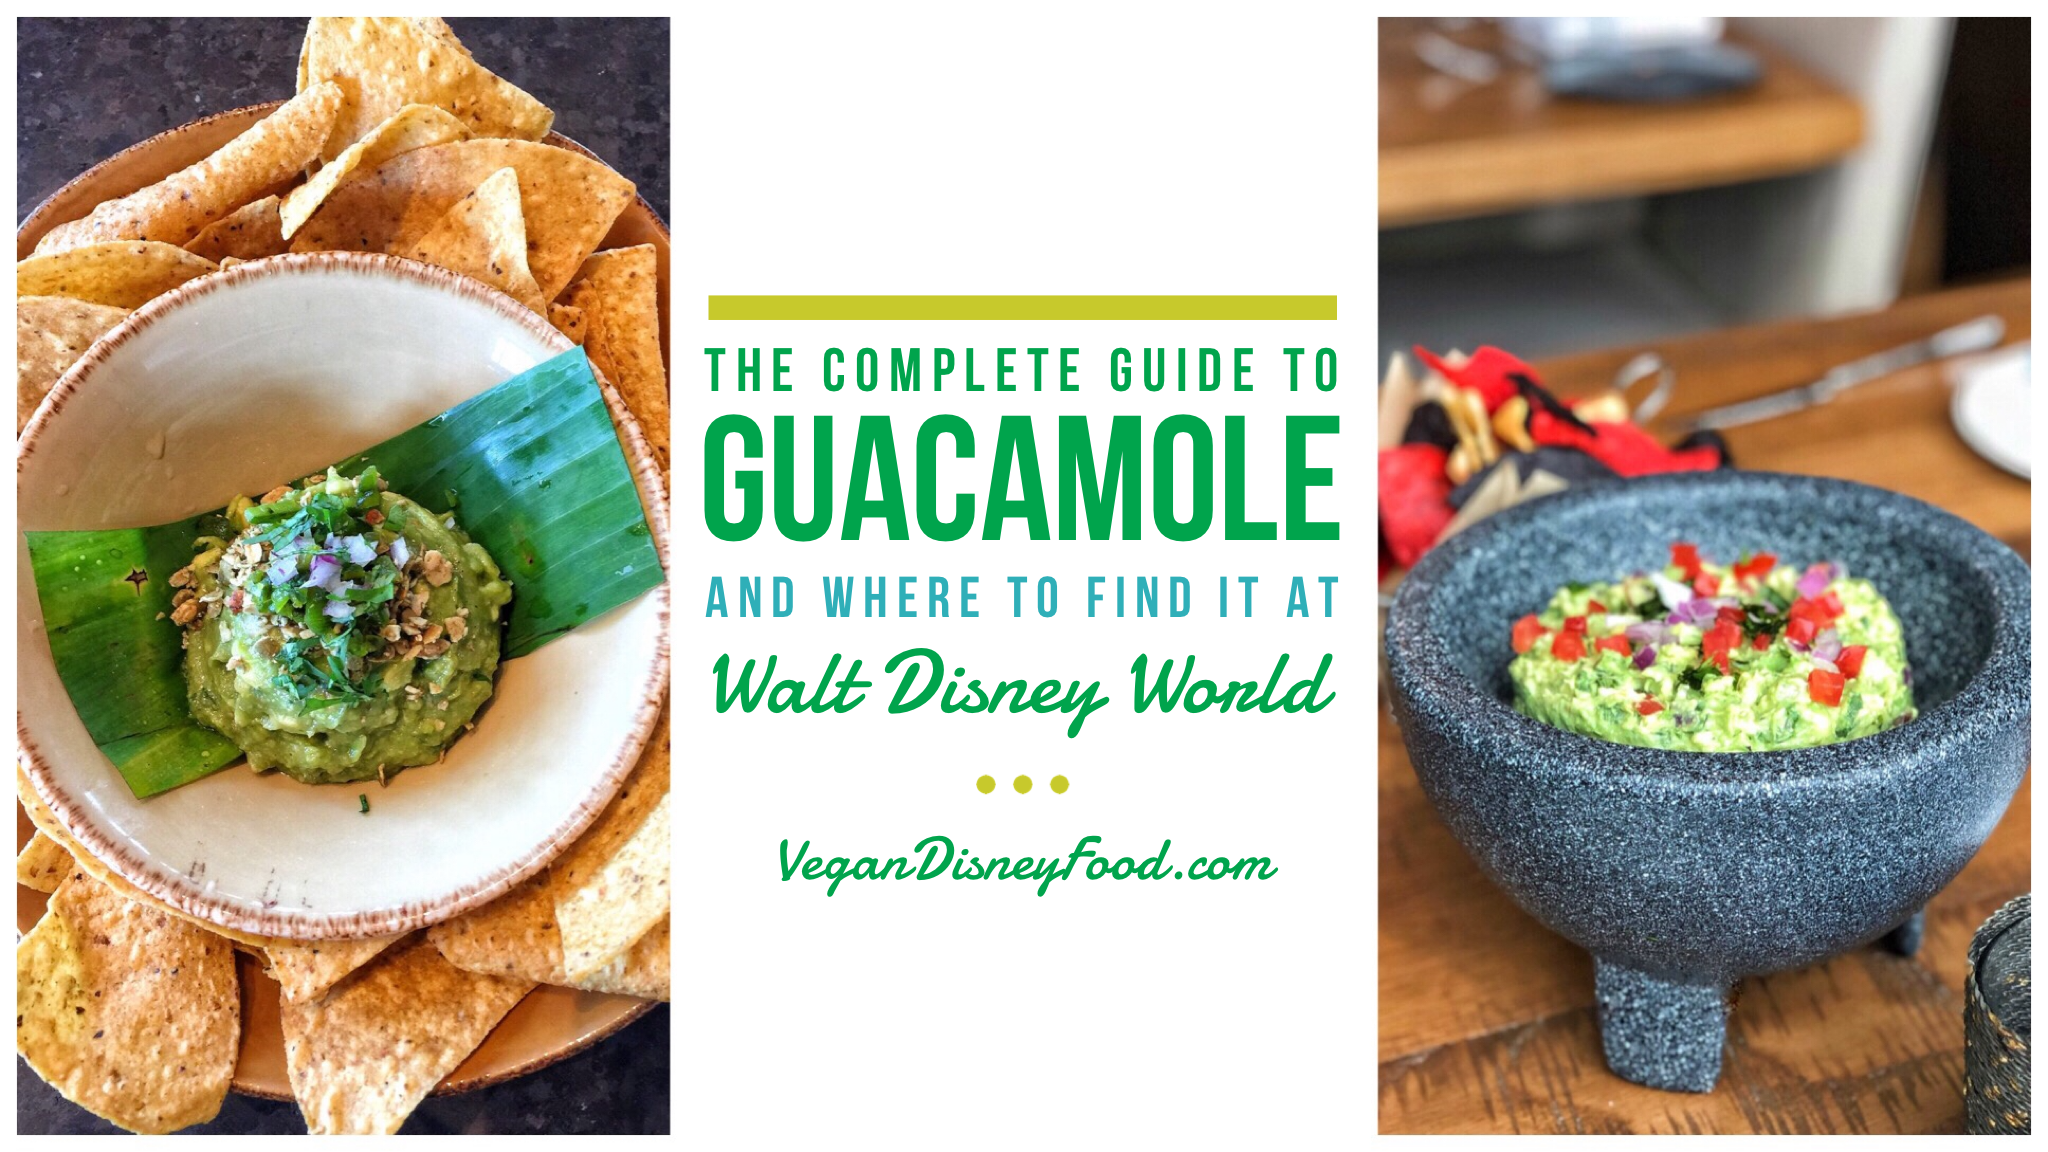 The Complete Guide to Guacamole: Where to Find it at Walt Disney World